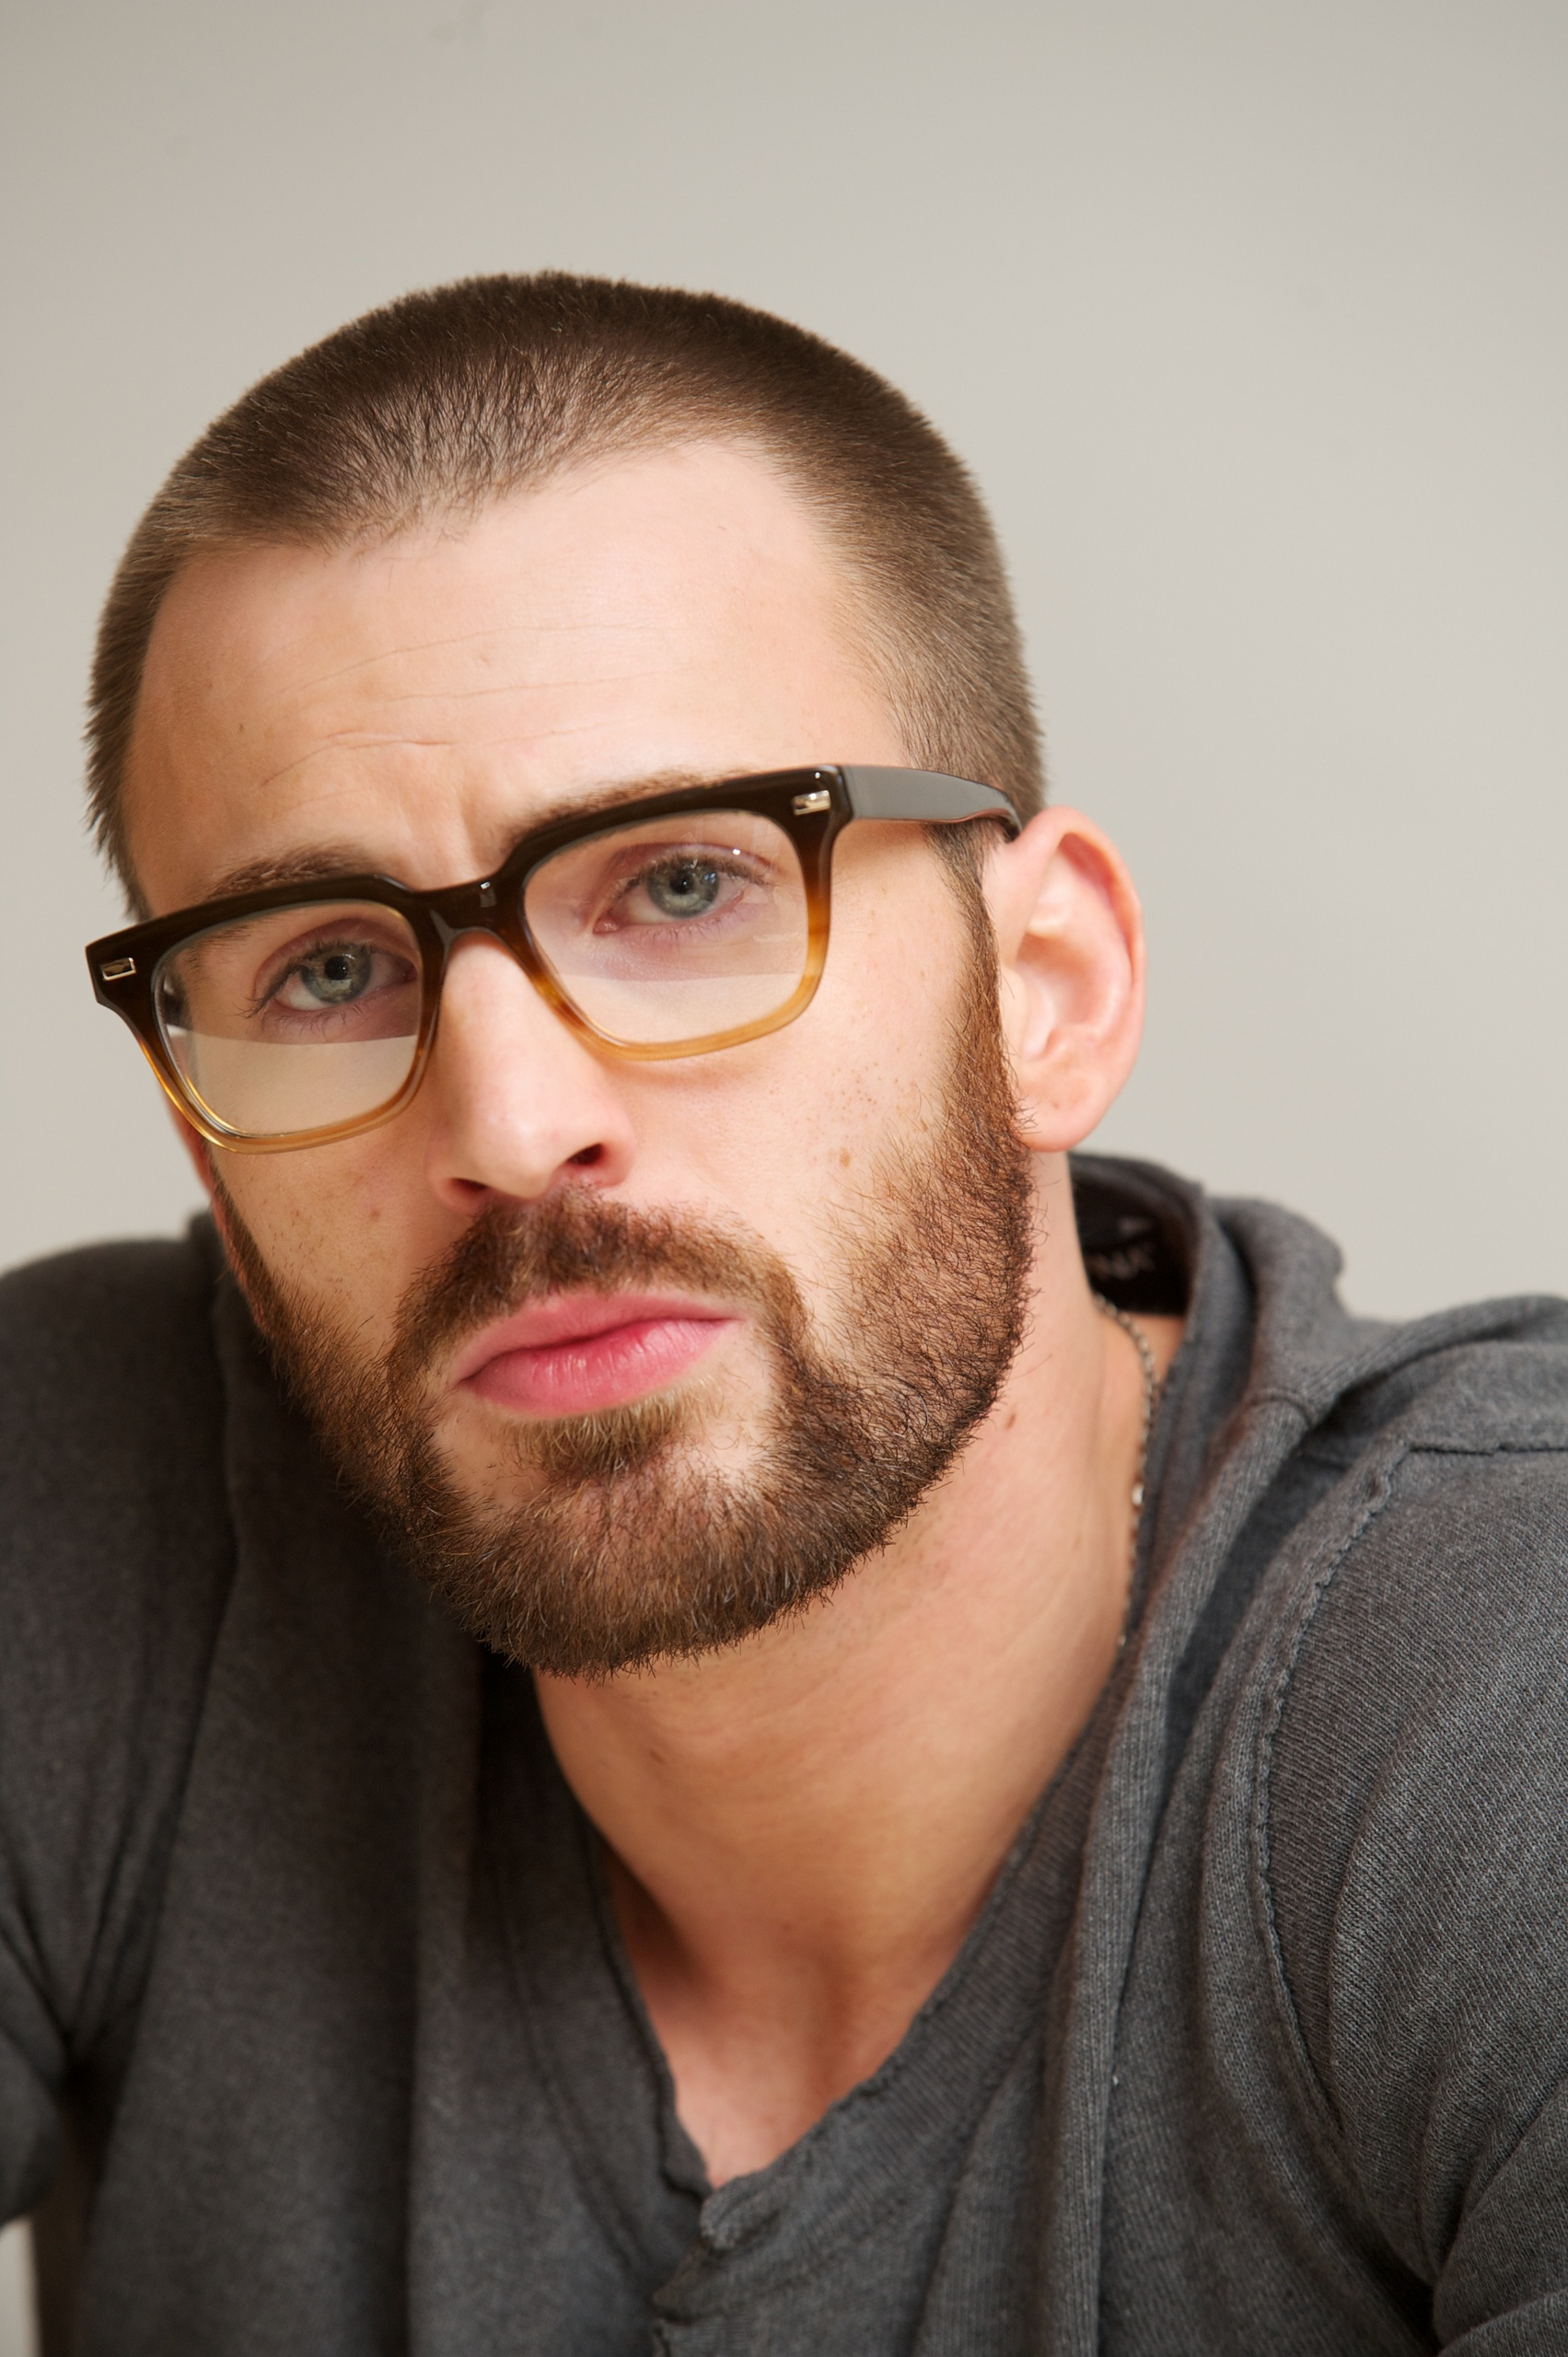 How About A Little Chris Evans Action Ladyboners